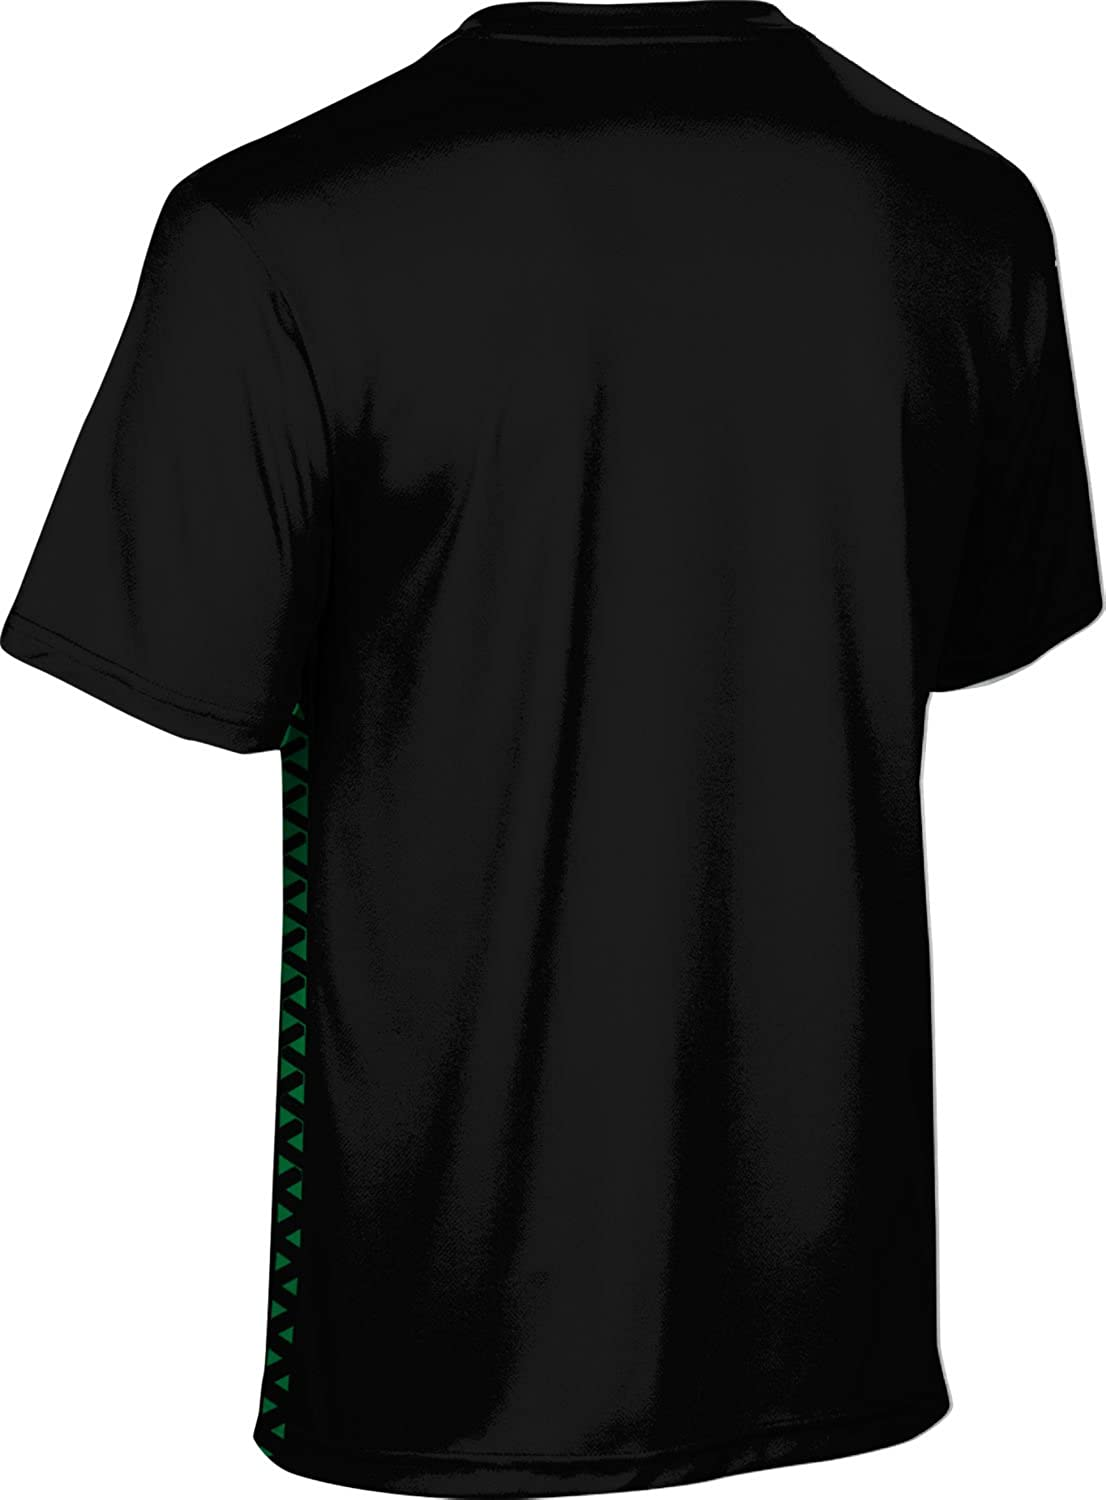 Geo ProSphere University of North Texas Boys Performance T-Shirt